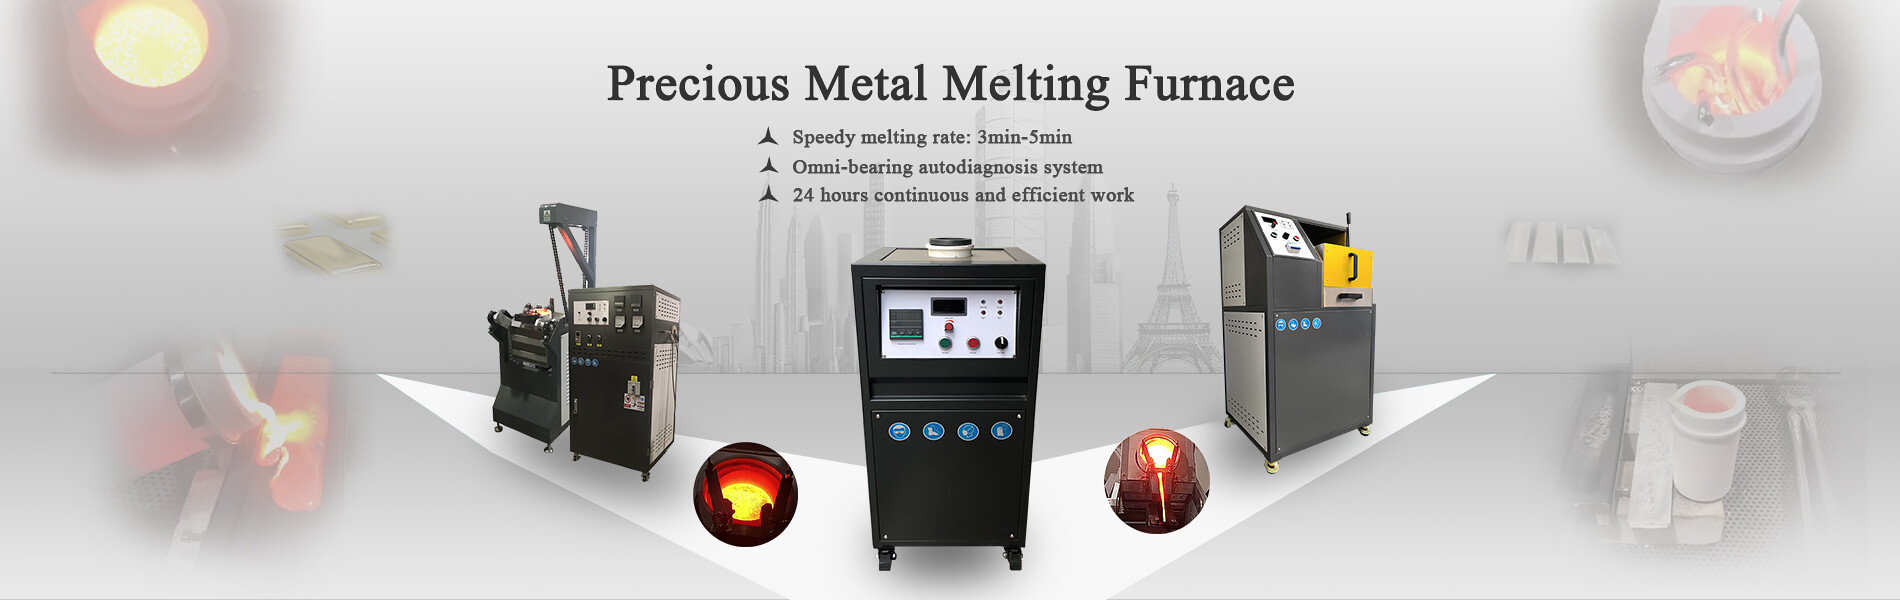 precious metal melting furnace